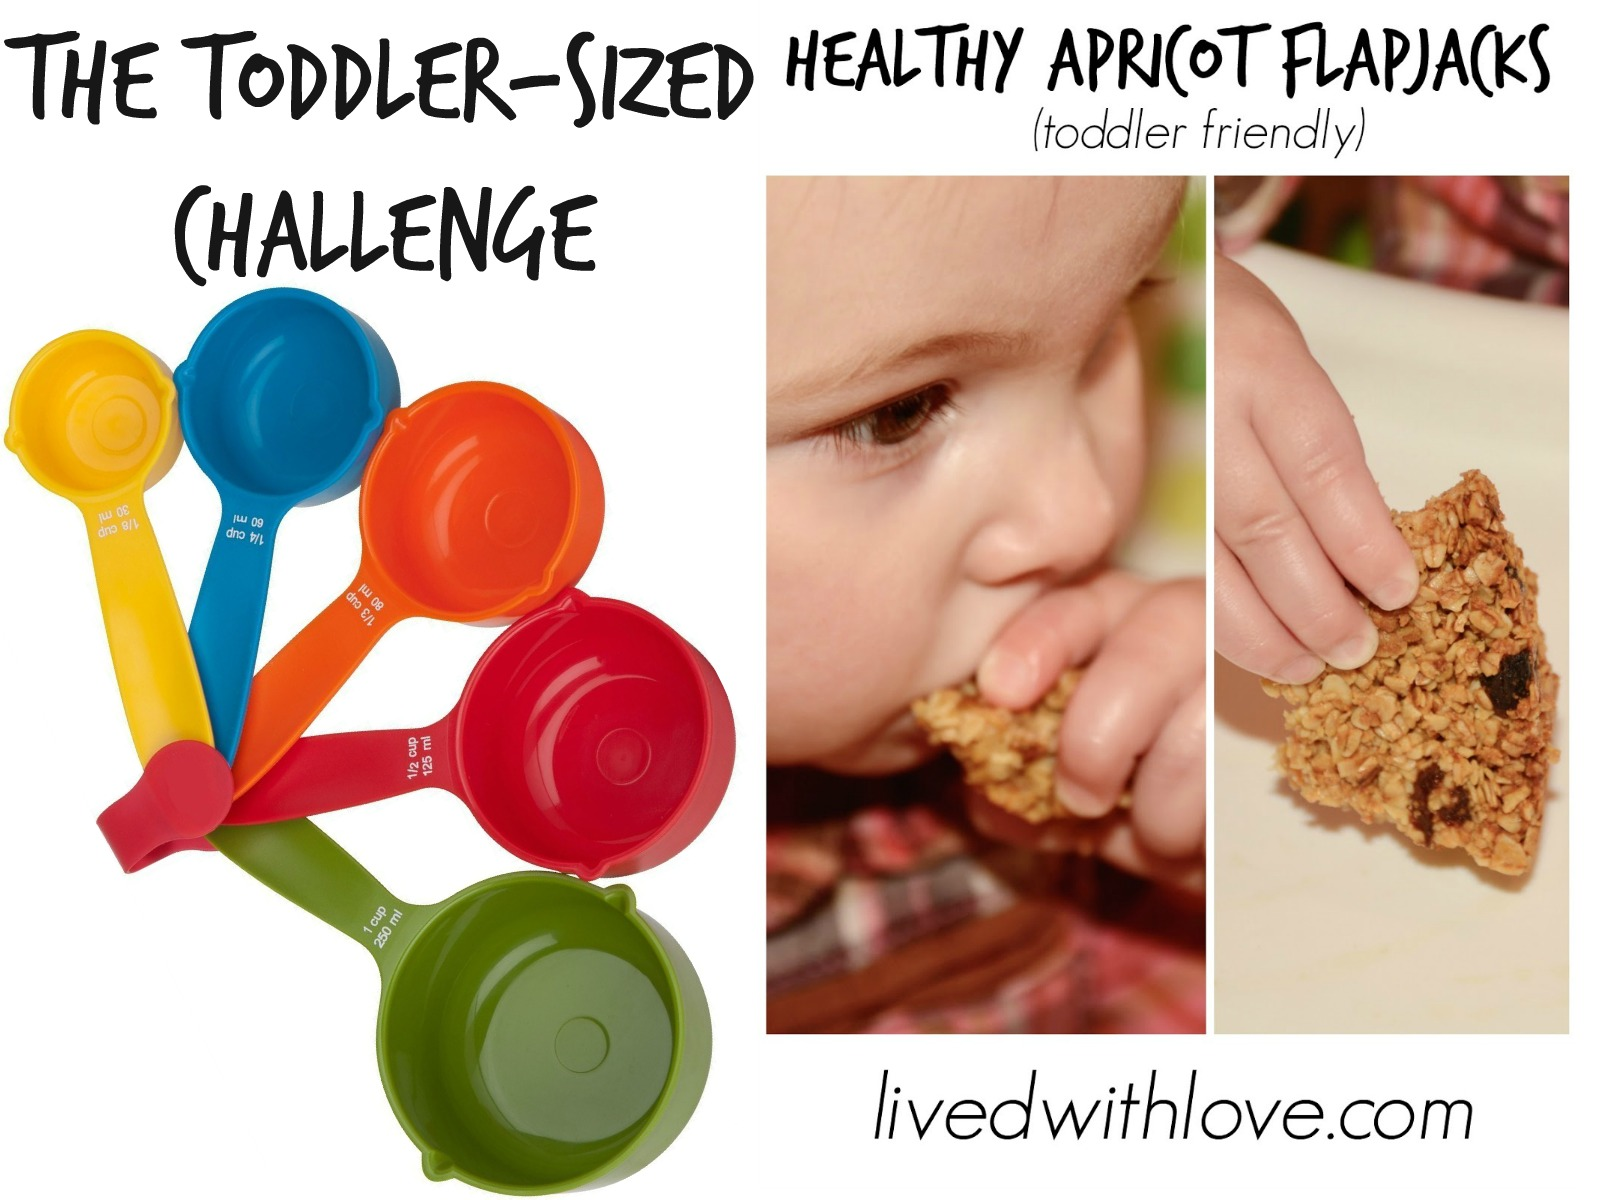 Toddler-sized challenge